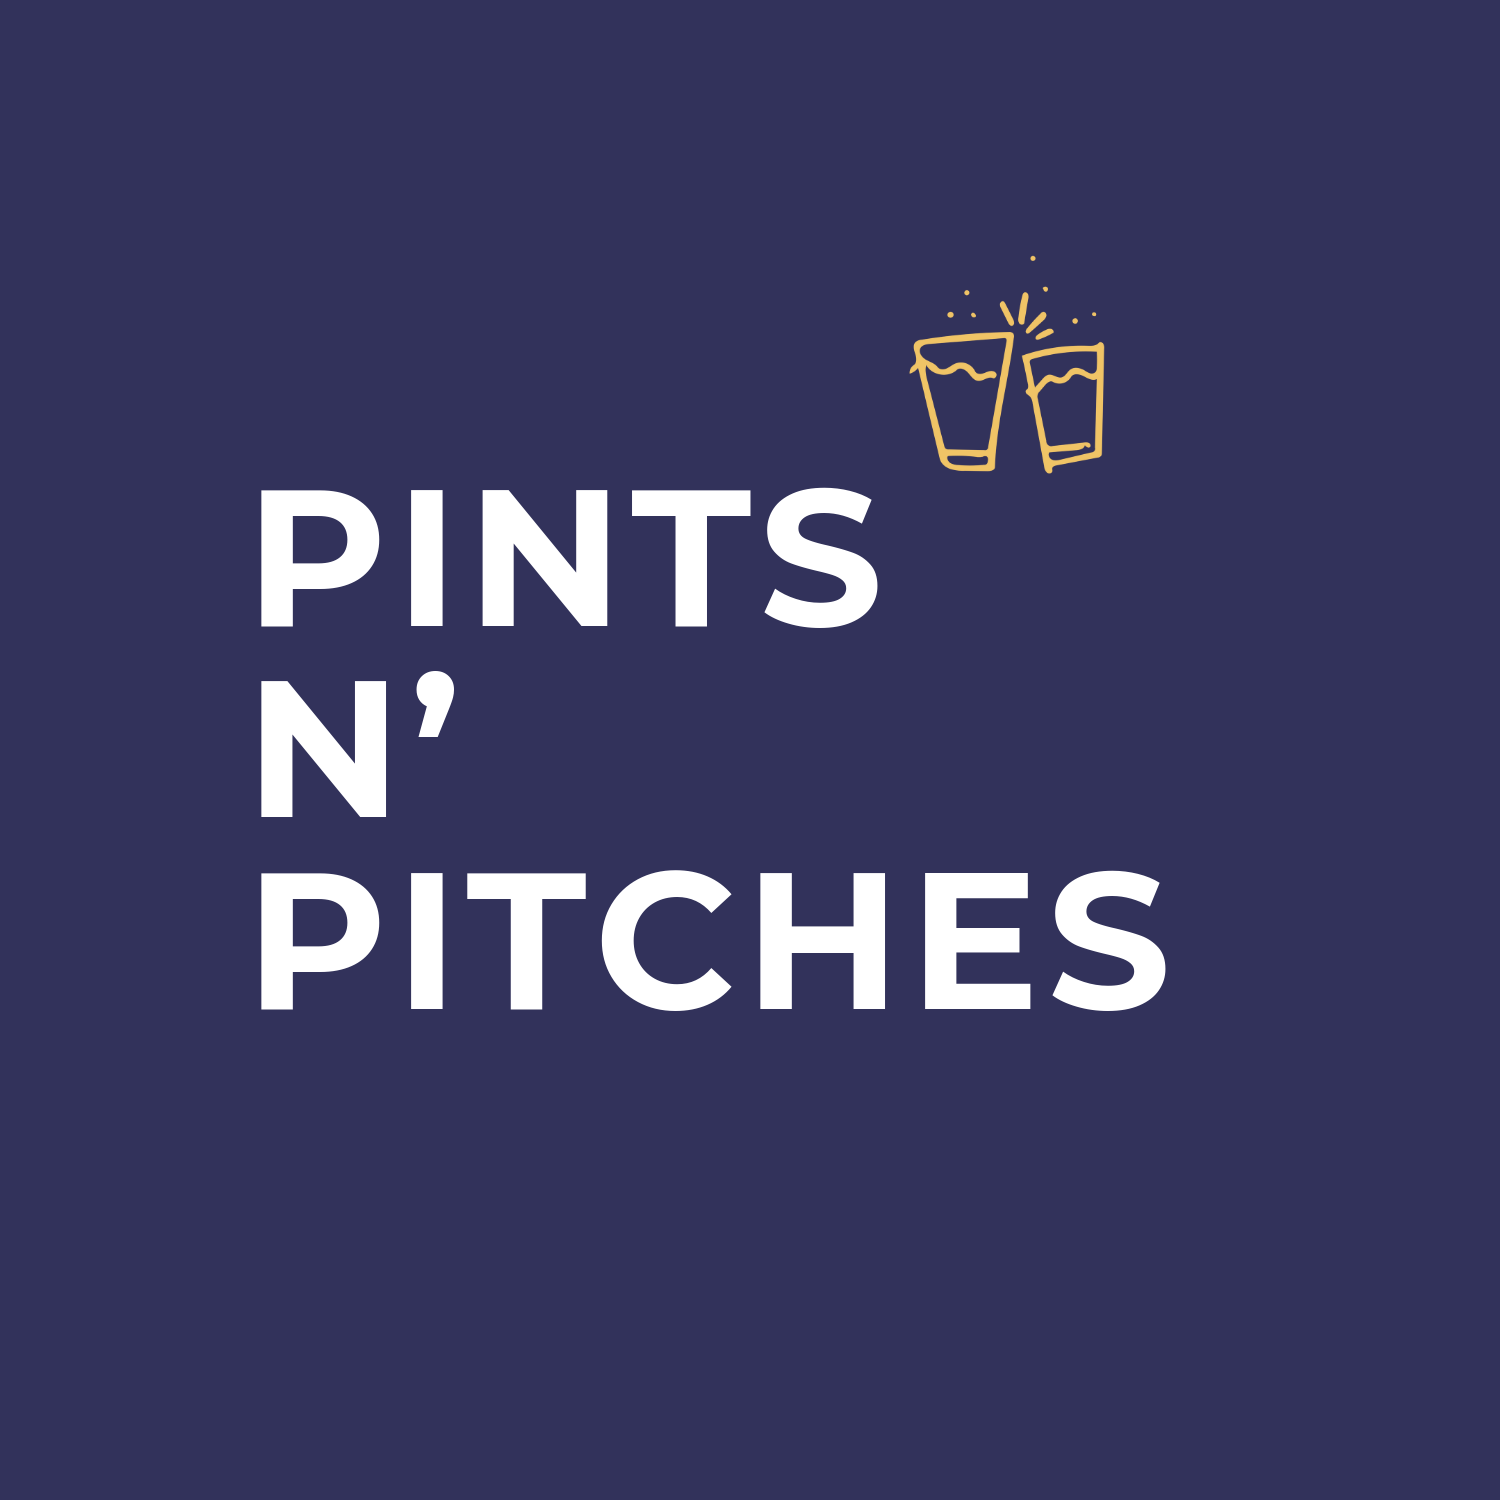 More information:    http://pintsnpitches.com